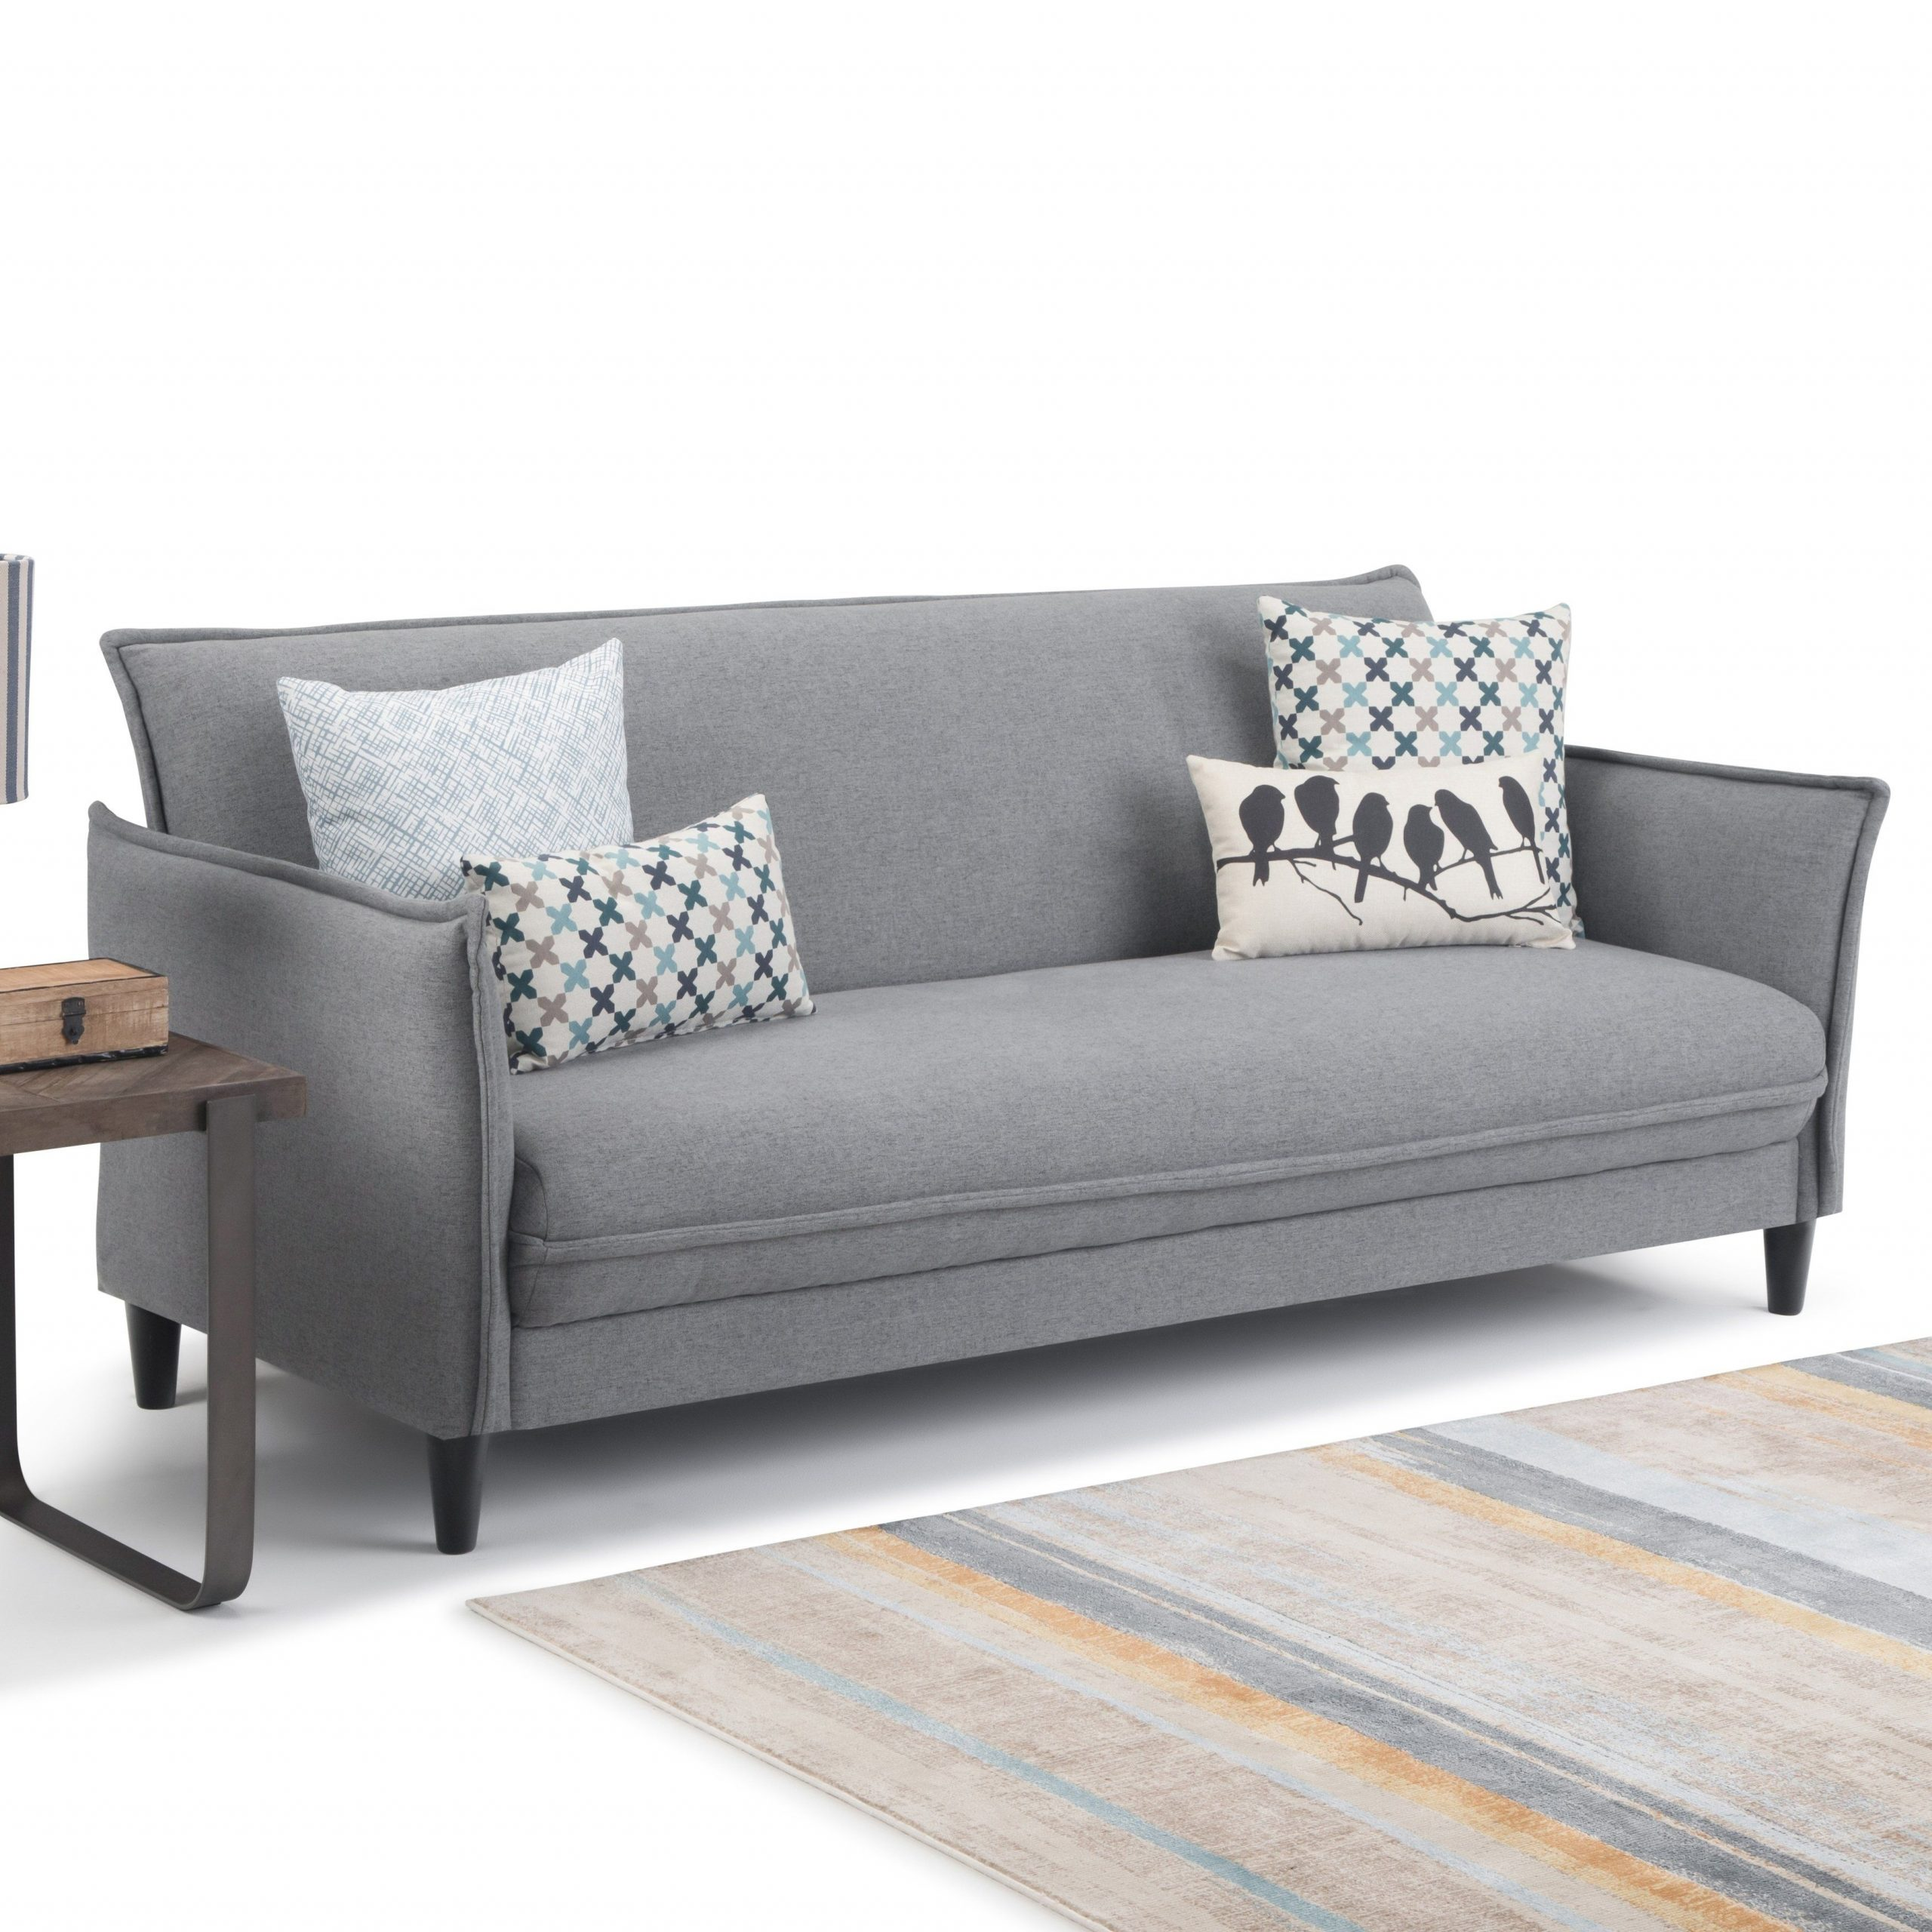 Wyndenhall Kichler Contemporary 81 Inch Wide Sofa Bed In Pertaining To Gneiss Modern Linen Sectional Sofas Slate Gray (View 2 of 15)